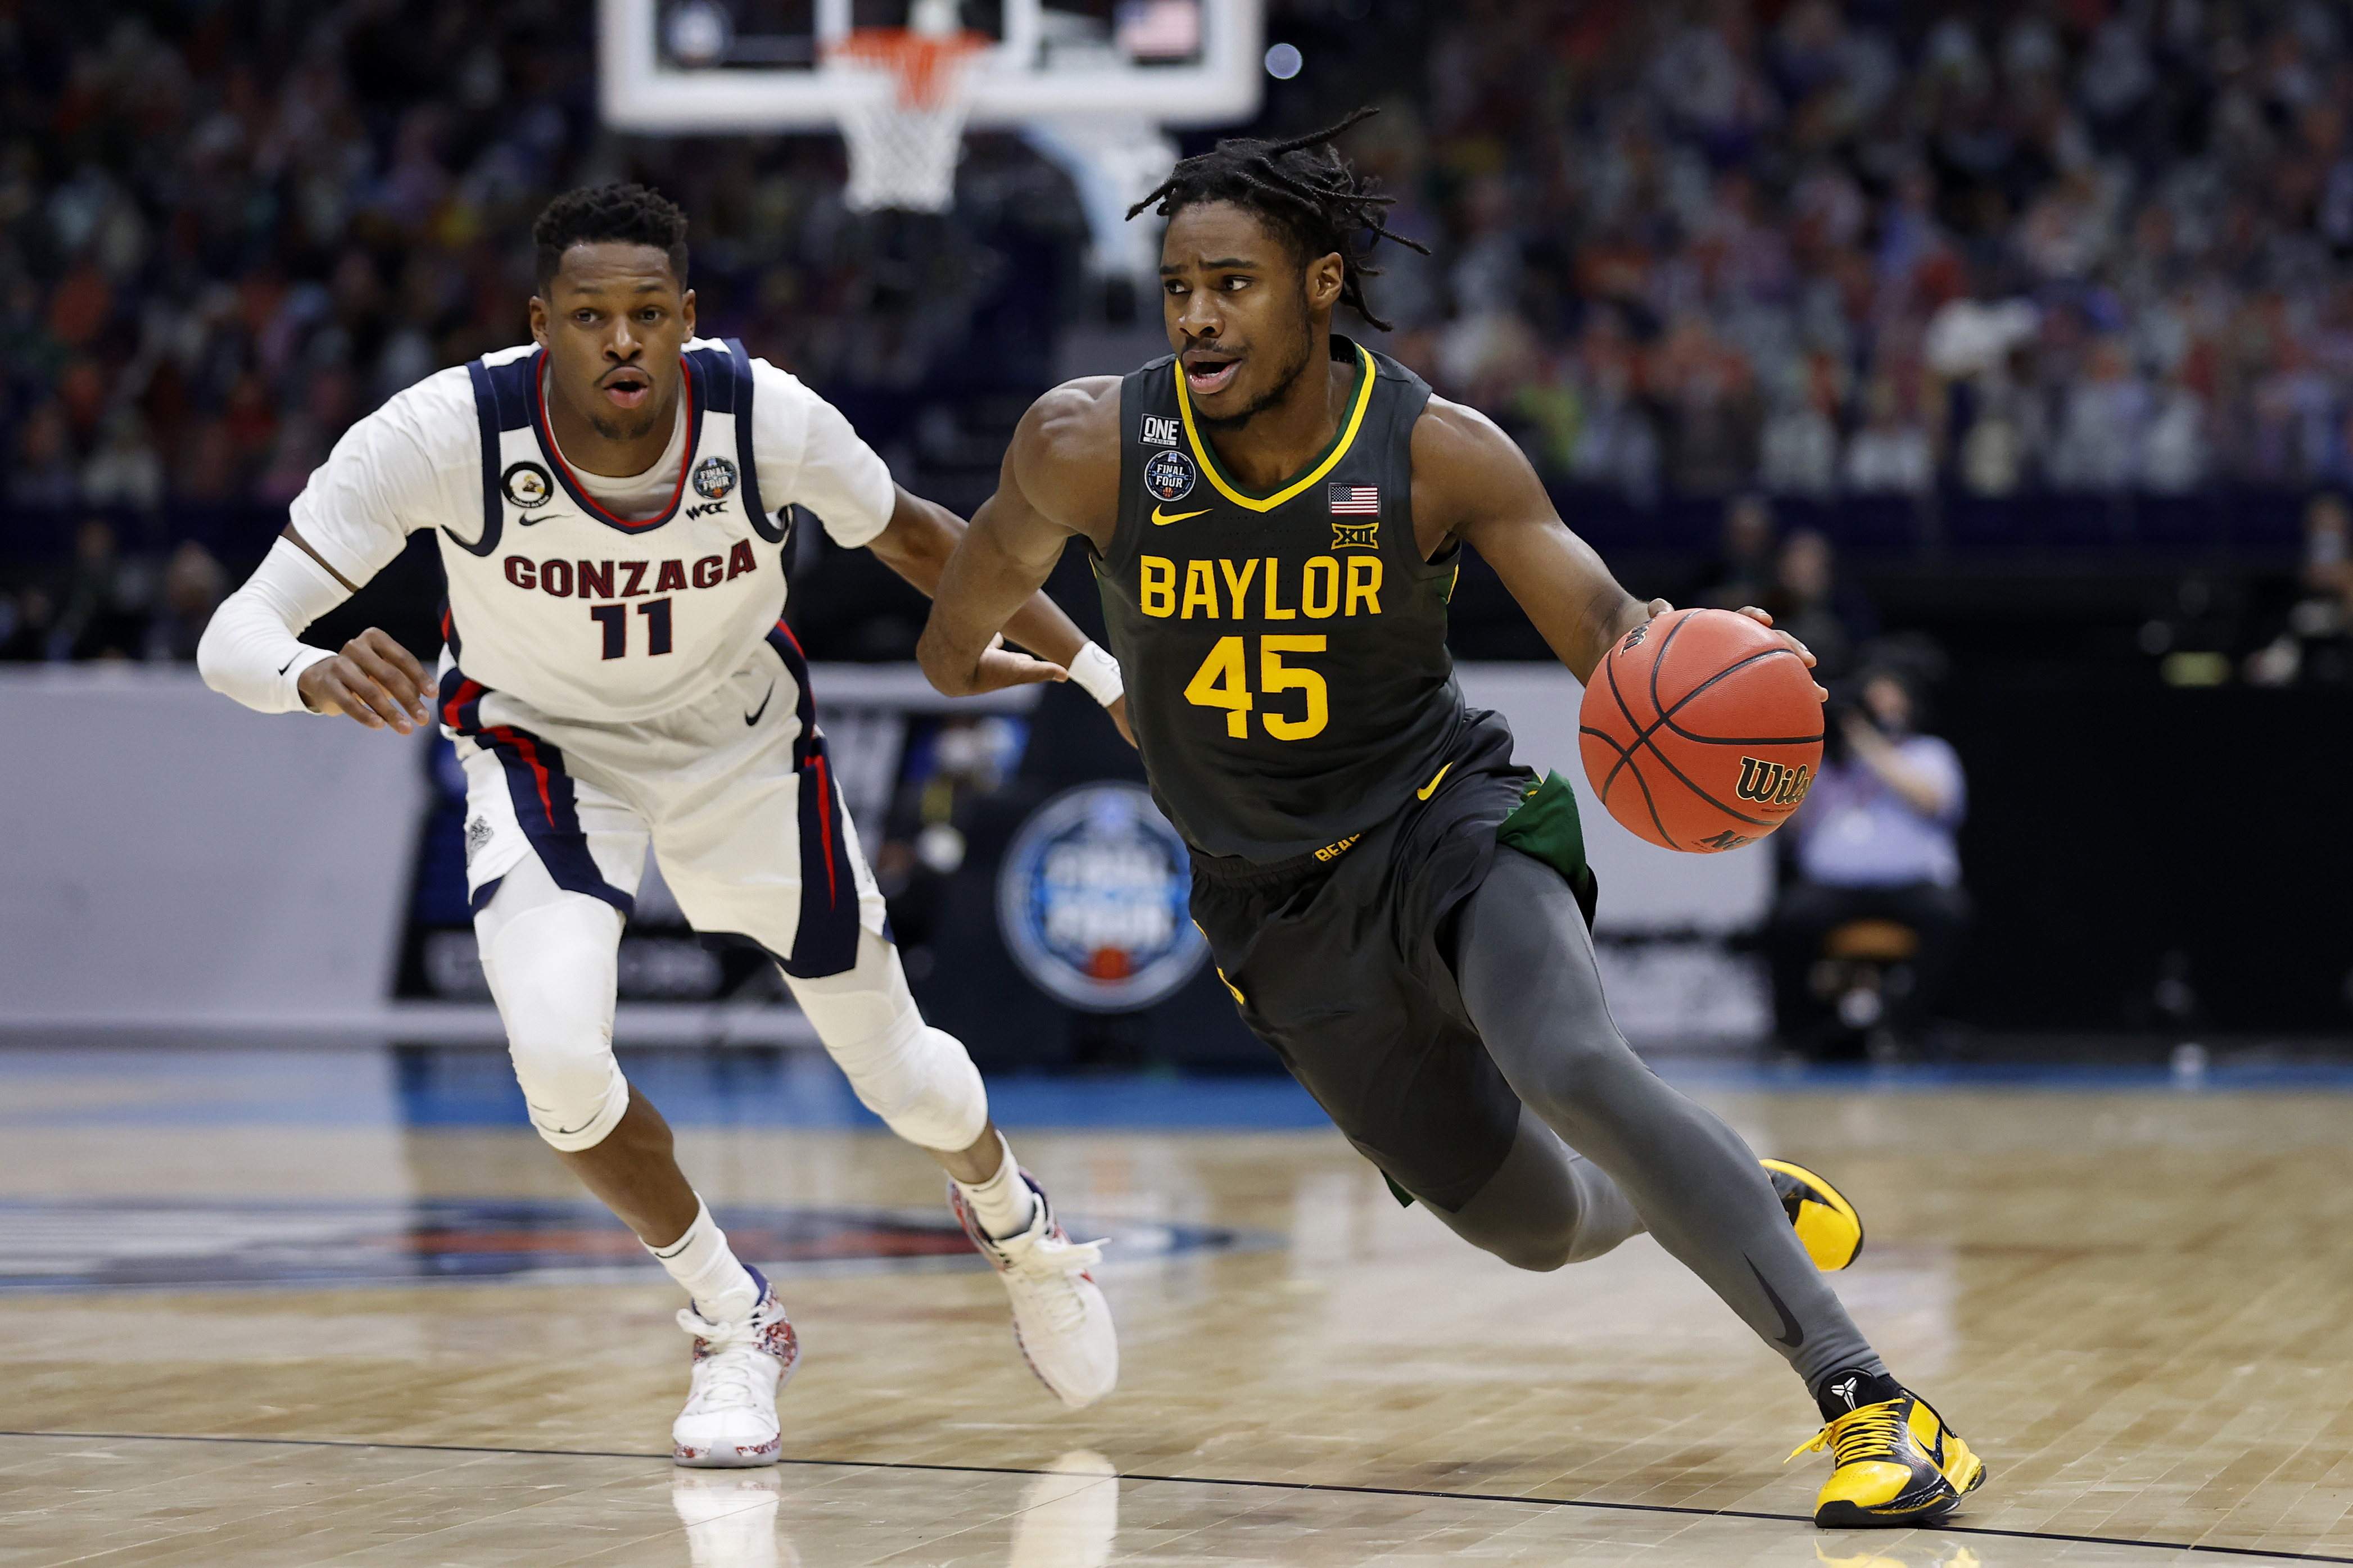 Davion Mitchell of the Baylor Bears drives to the basket as Joel Ayayi of the Gonzaga Bulldogs defends in the National Championship game of the 2021 NCAA Men's Basketball Tournament at Lucas Oil Stadium on April 05, 2021 in Indianapolis, Indiana.